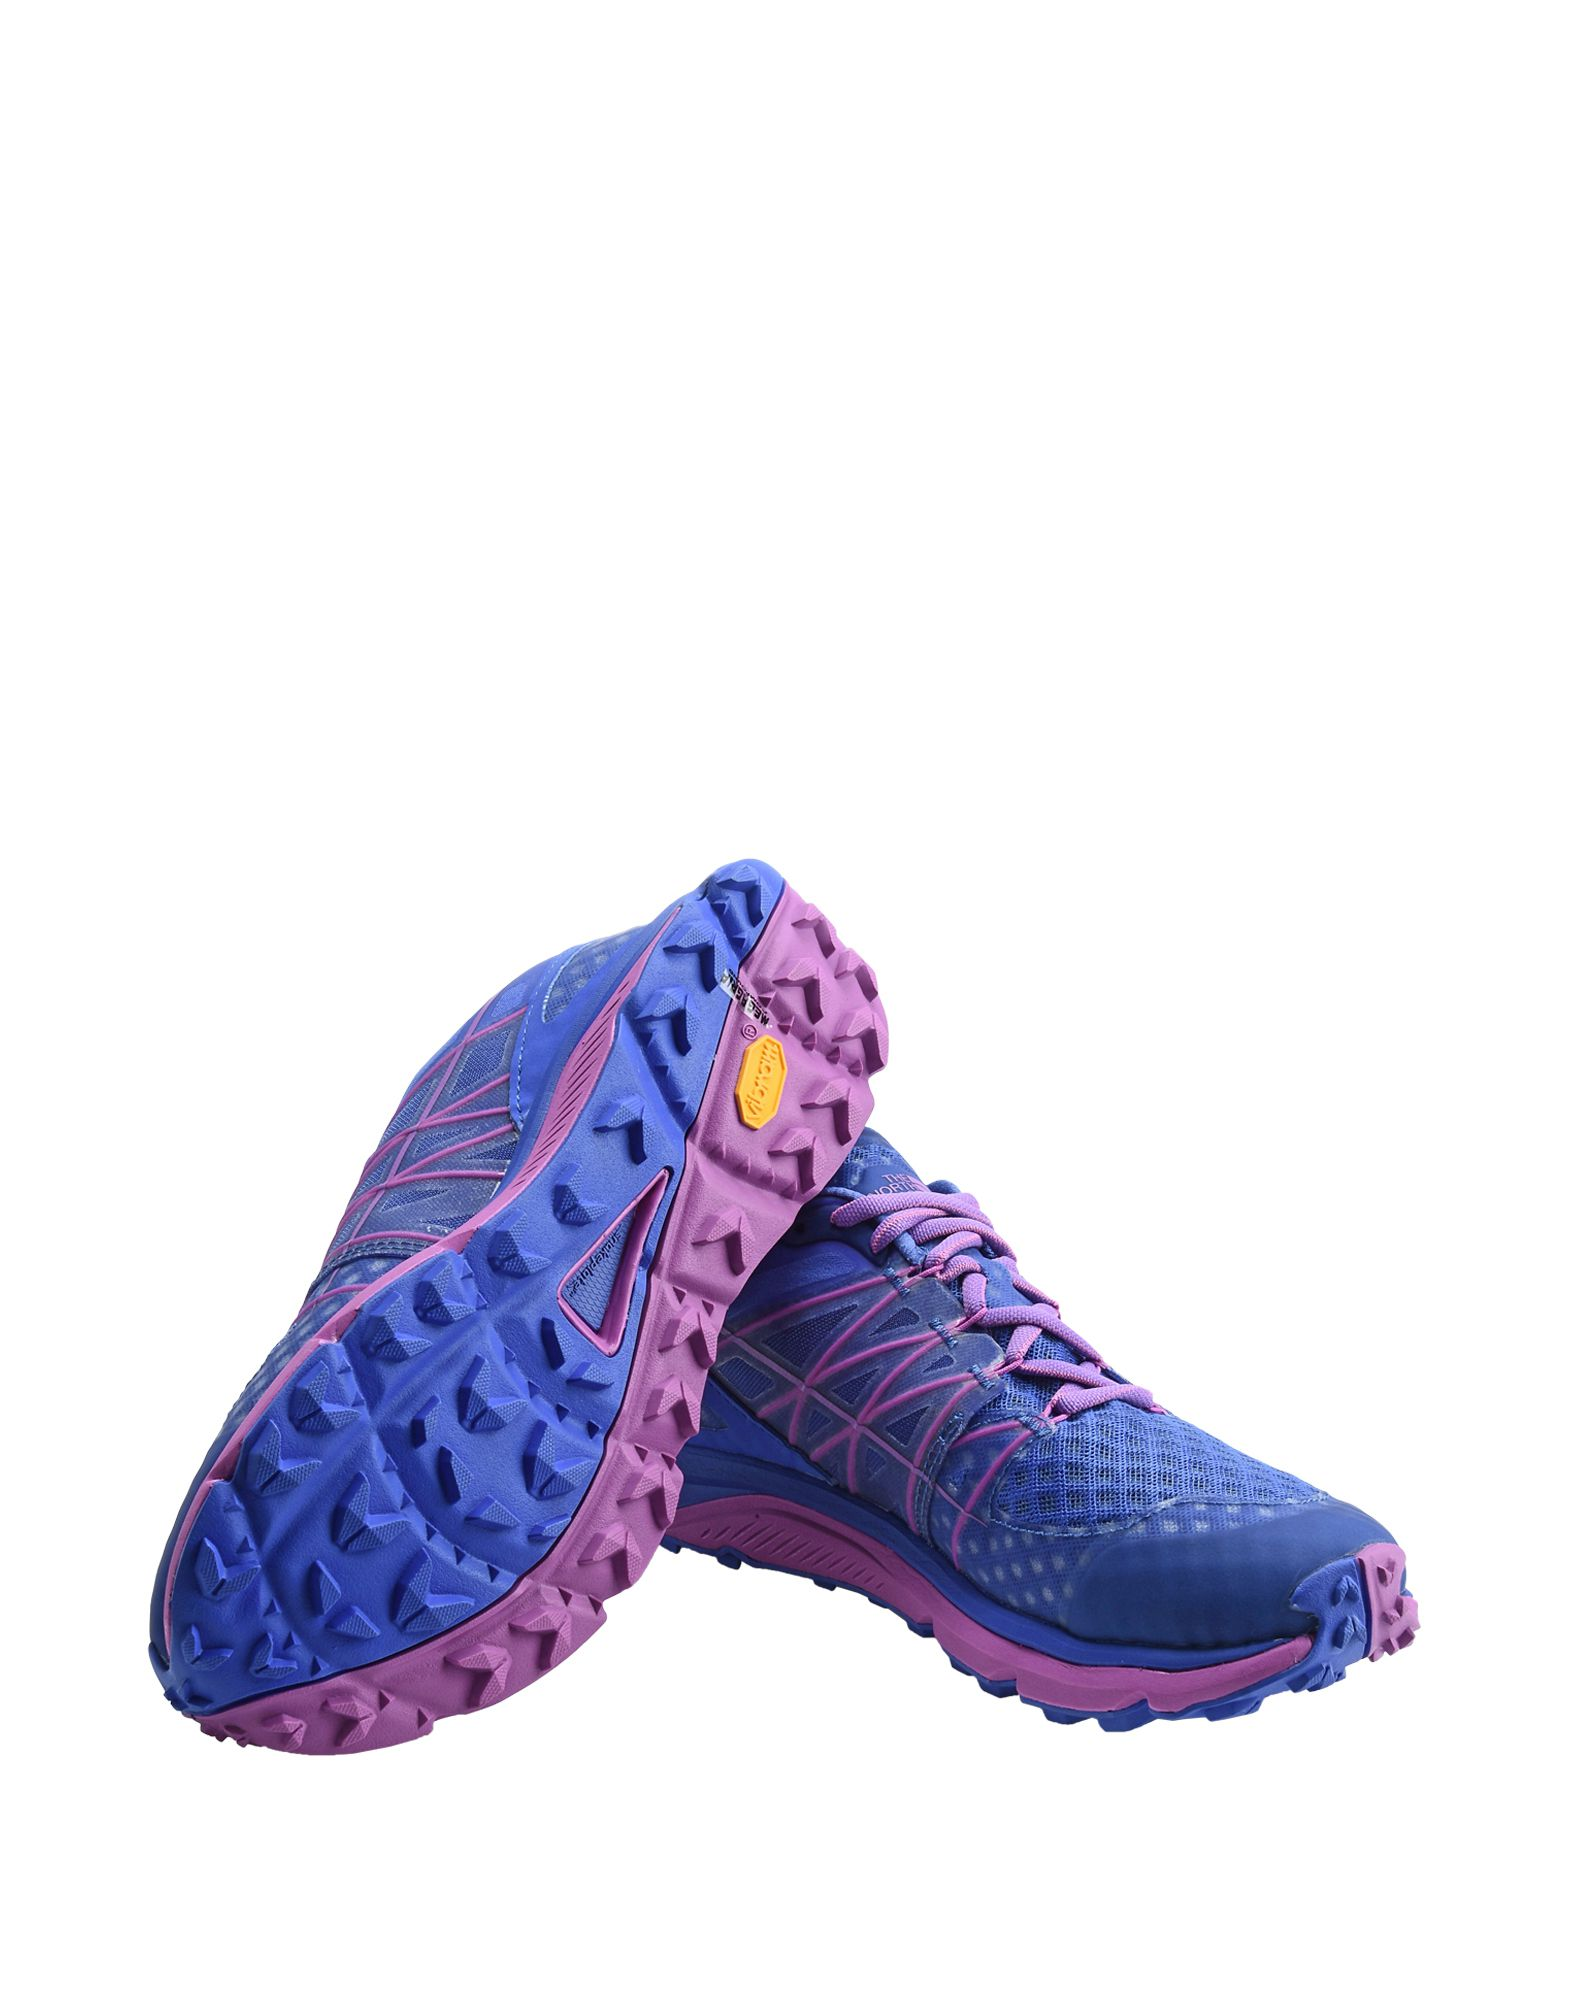 Sneakers The North Face M Ultra Vertical Vibram Megagrip, Flashdry Trail Running - Femme - Sneakers The North Face sur